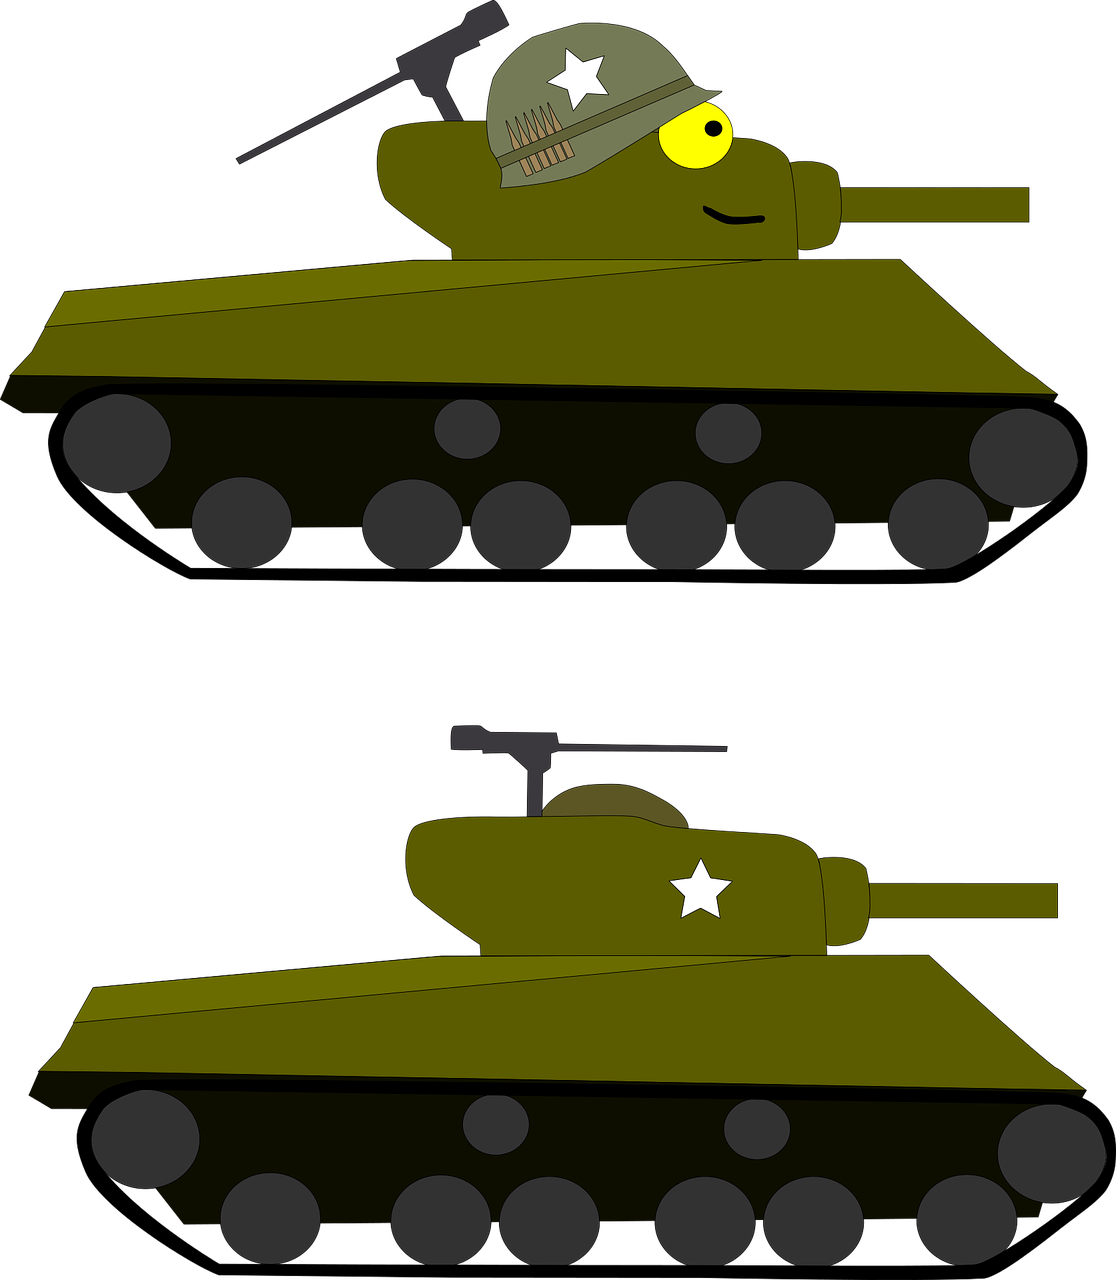 Army tank cartoon images